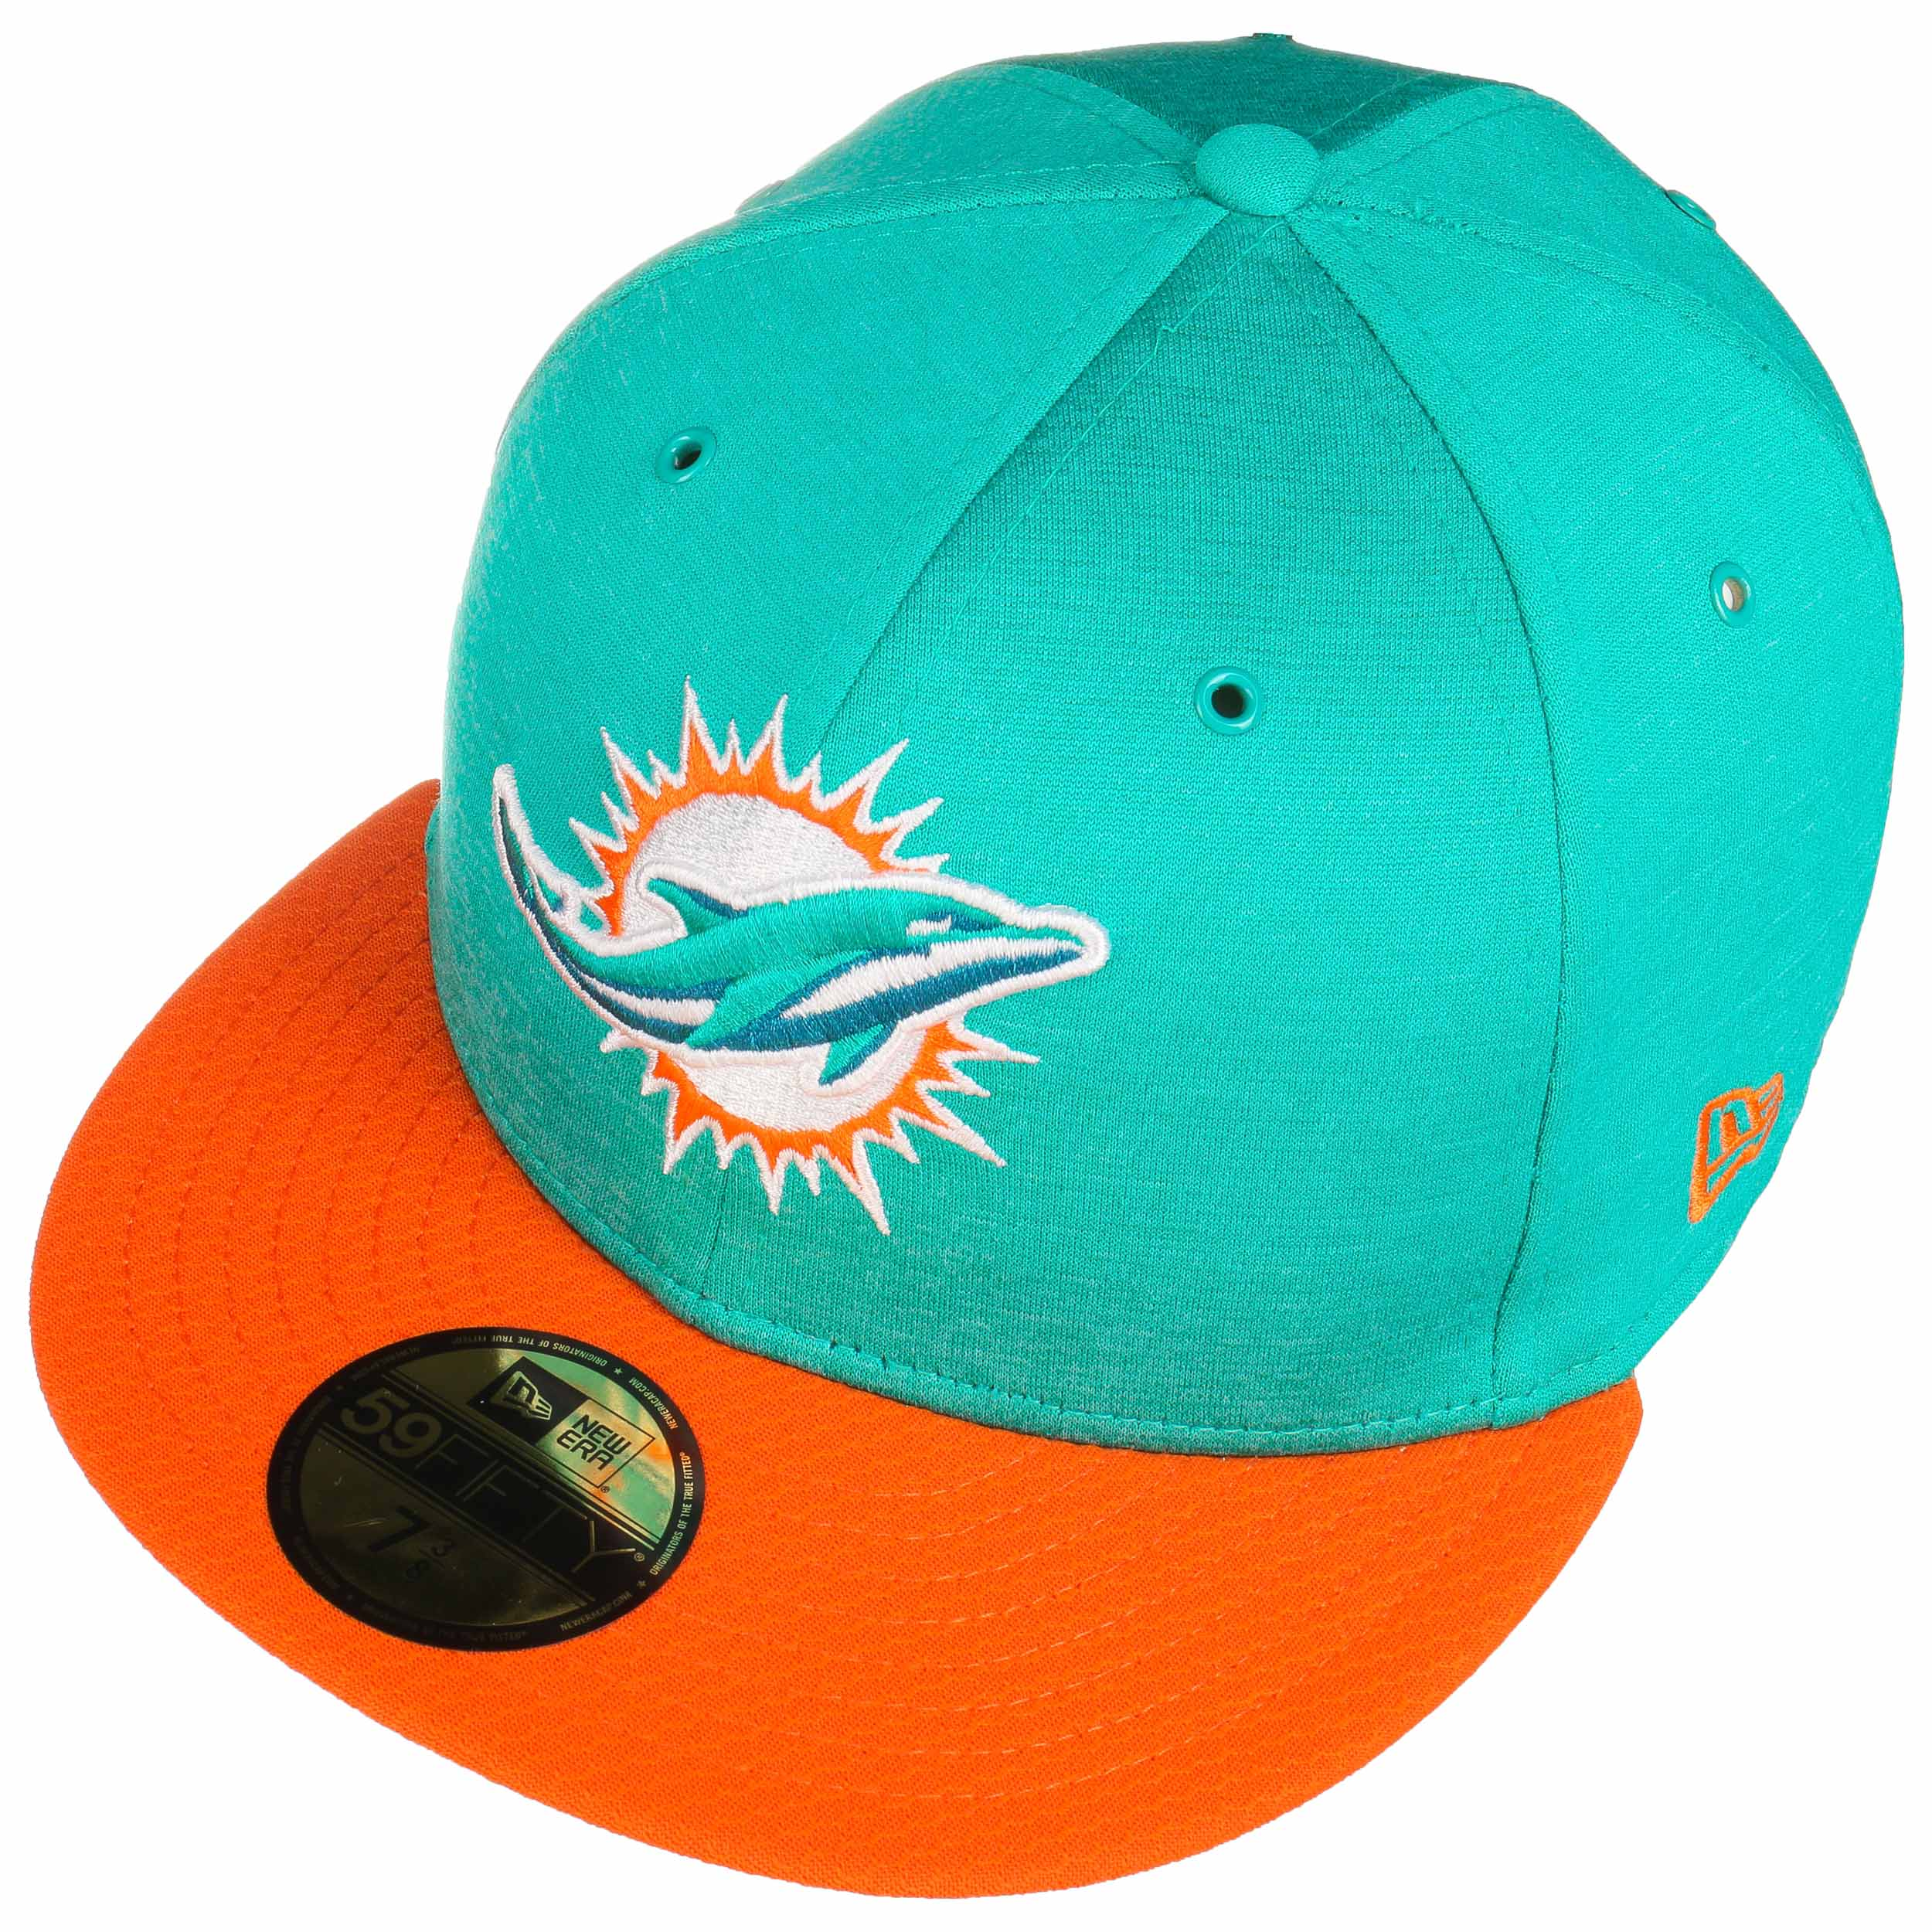 57ecc8025fb 59Fifty On-Field 18 Dolphins Cap by New Era - turquoise 1 ...